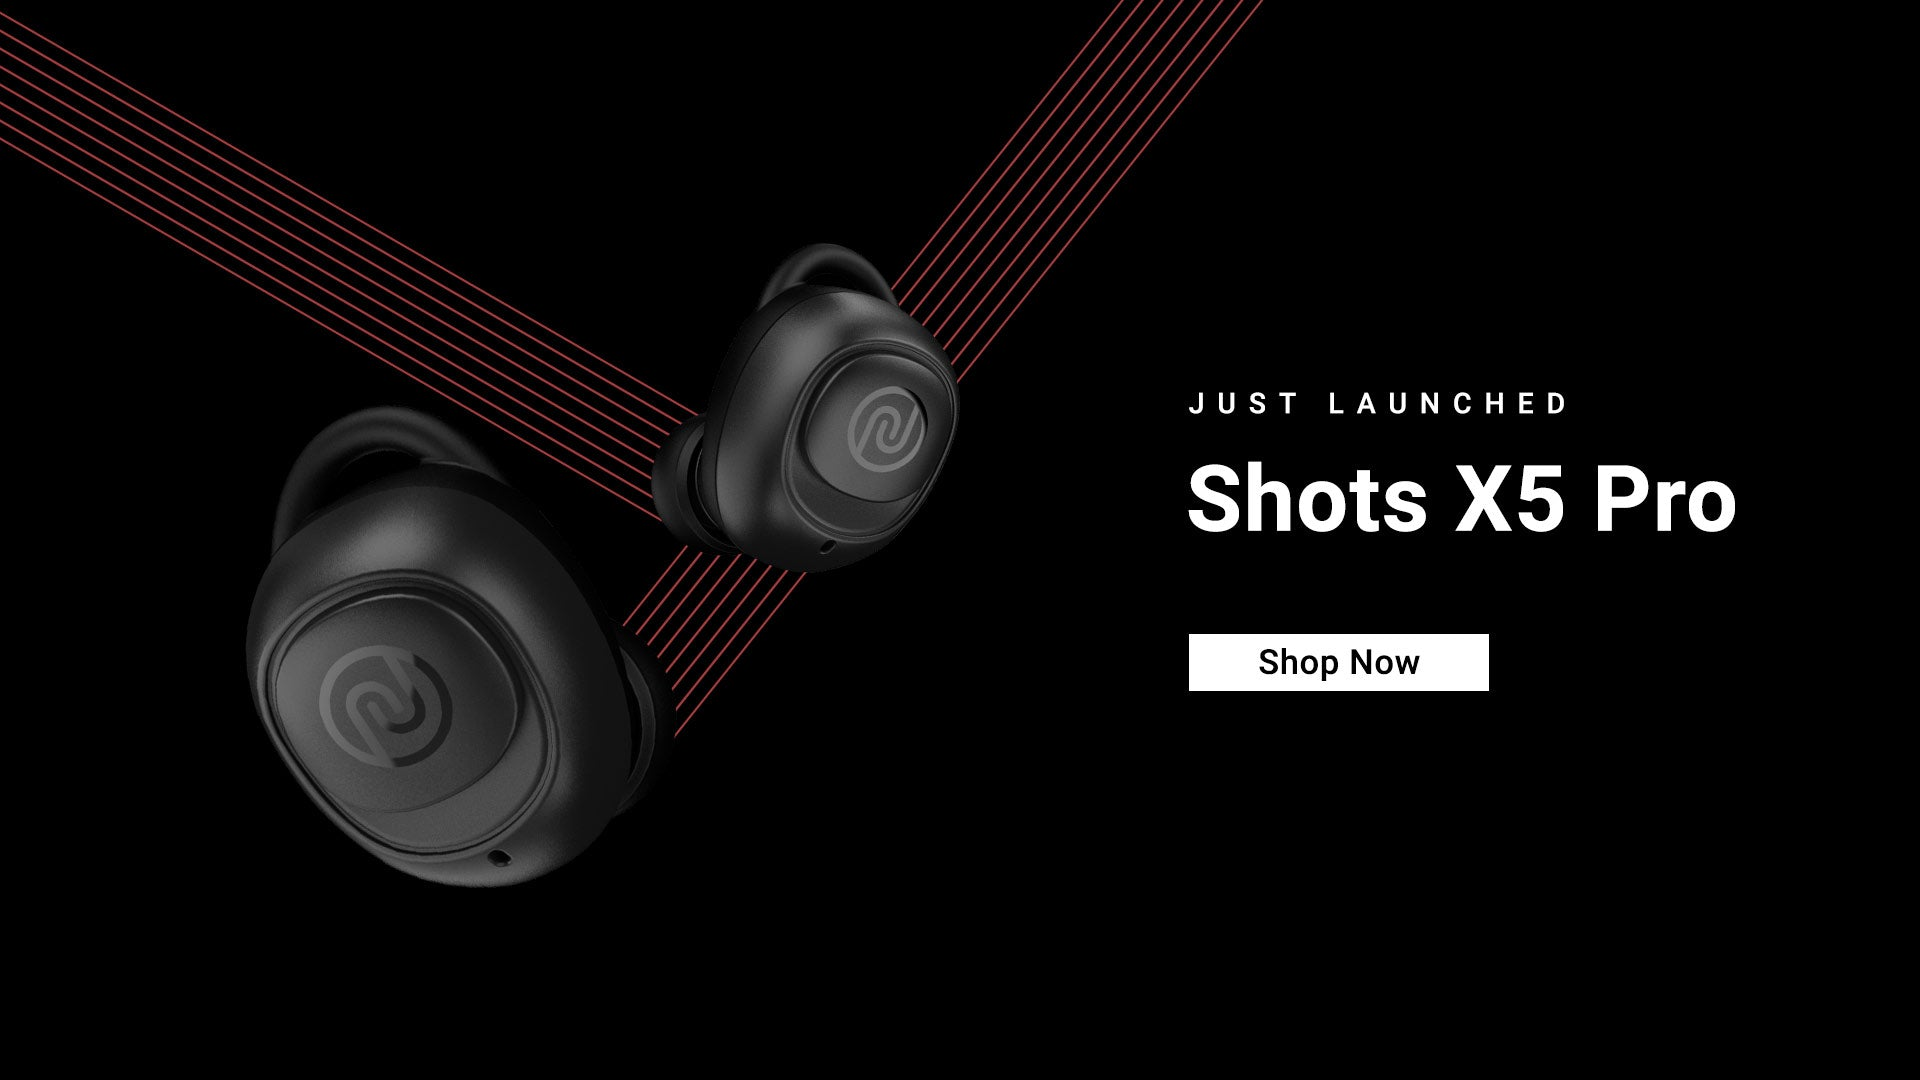 Shots X5 Pro Truly Wireless Earbuds